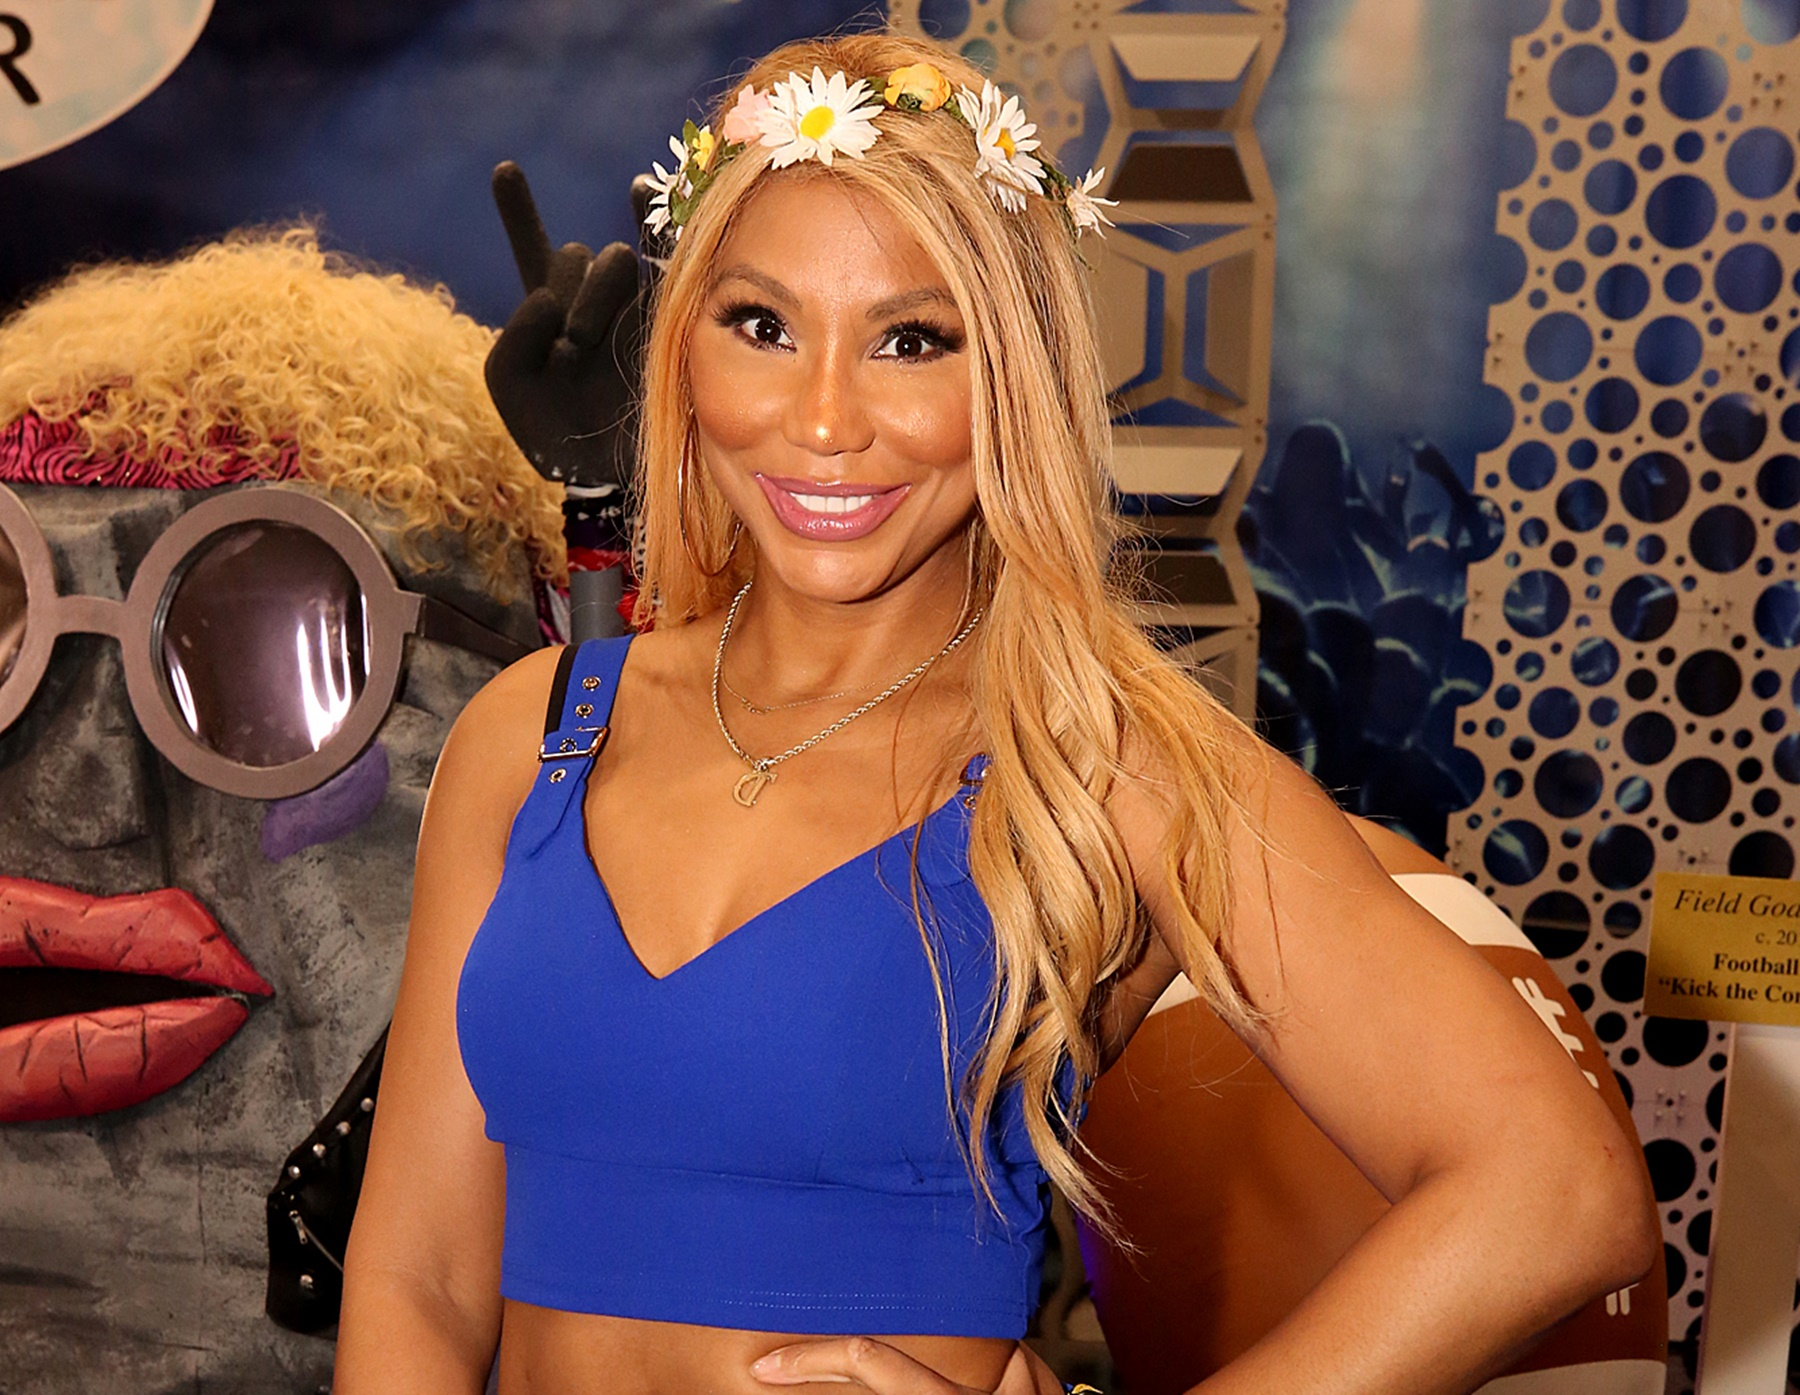 tamar-braxtons-boyfriend-david-adefeso-said-she-has-a-face-like-an-angel-and-body-like-a-dungeon-mistress-after-she-posted-this-eye-popping-video